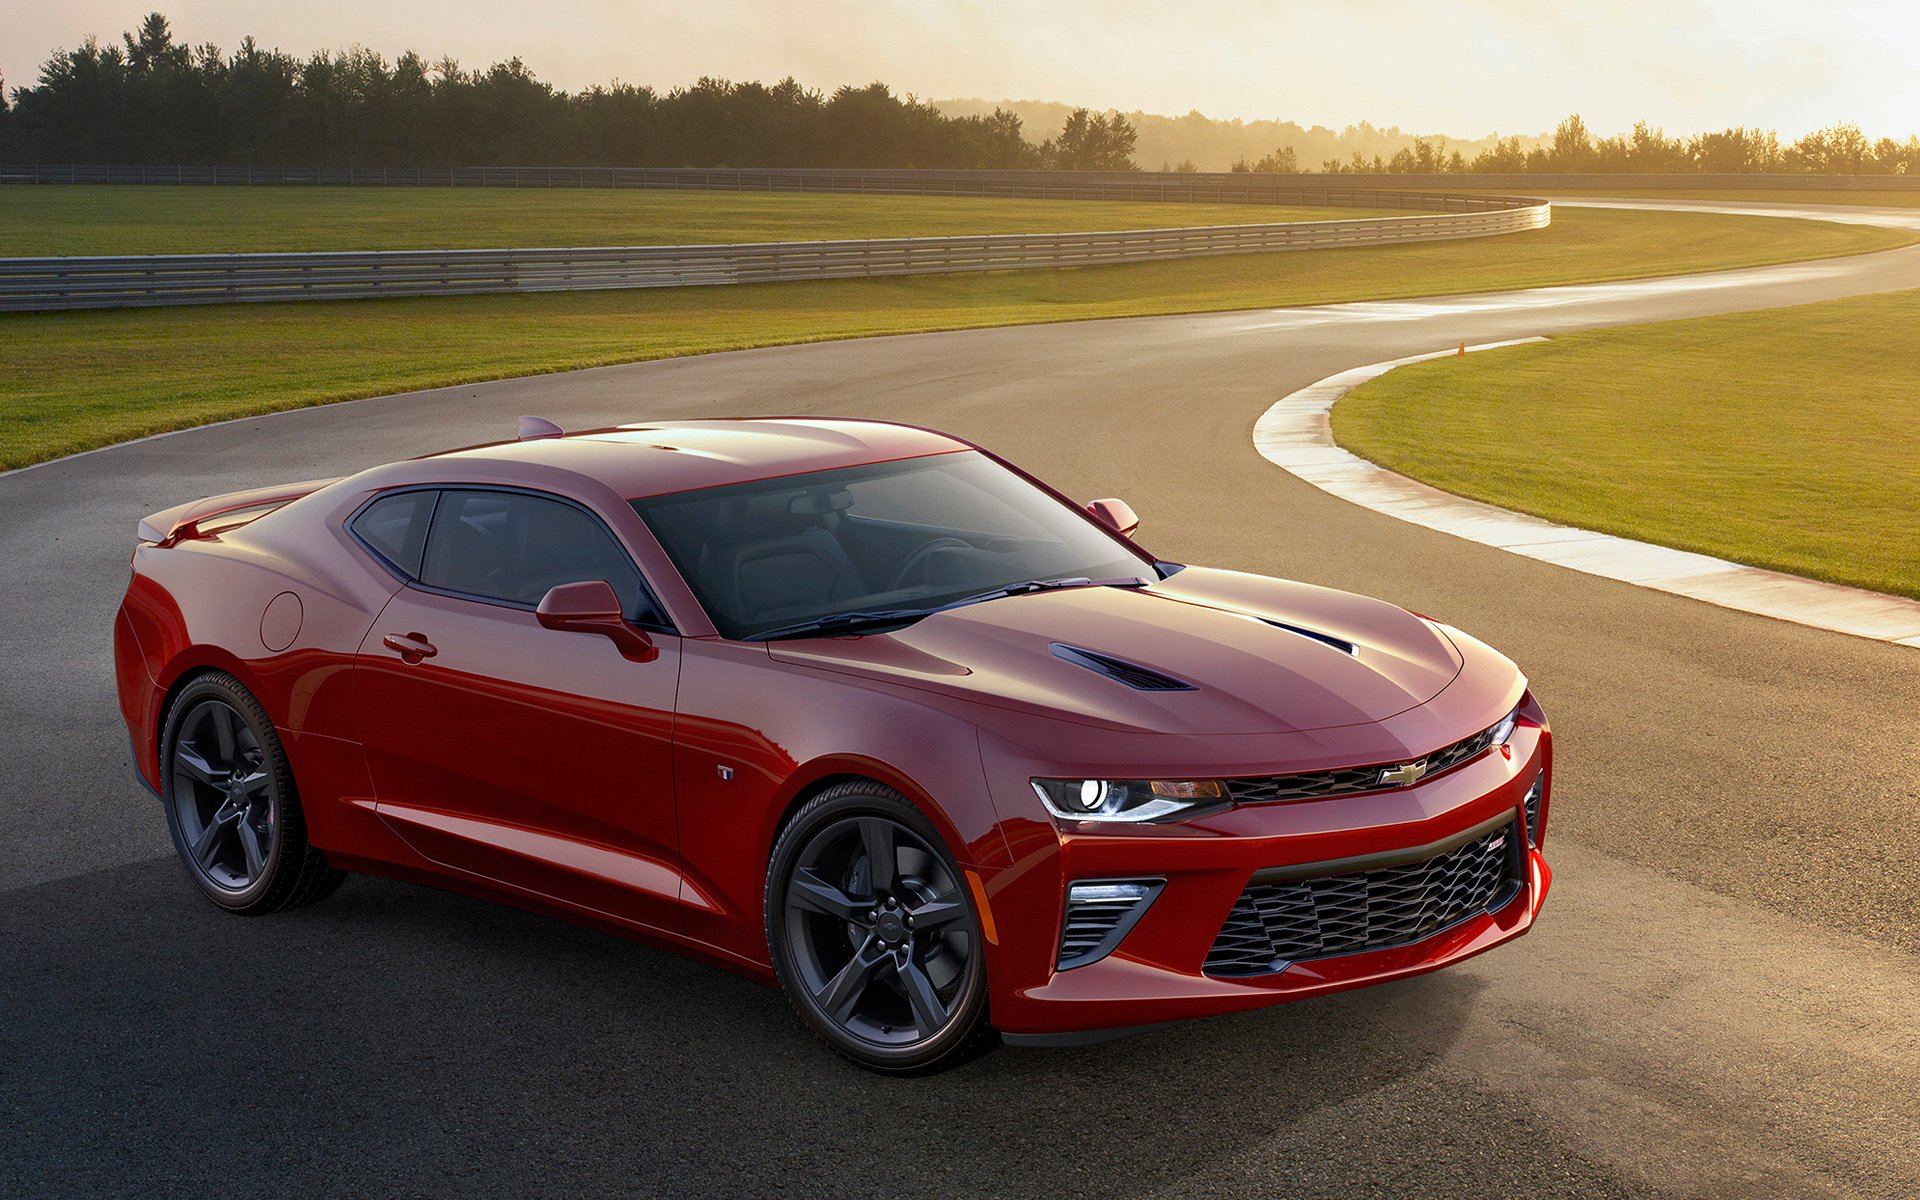 2016 Chevrolet Camaro Wallpaper HD Car Wallpapers 1920x1200